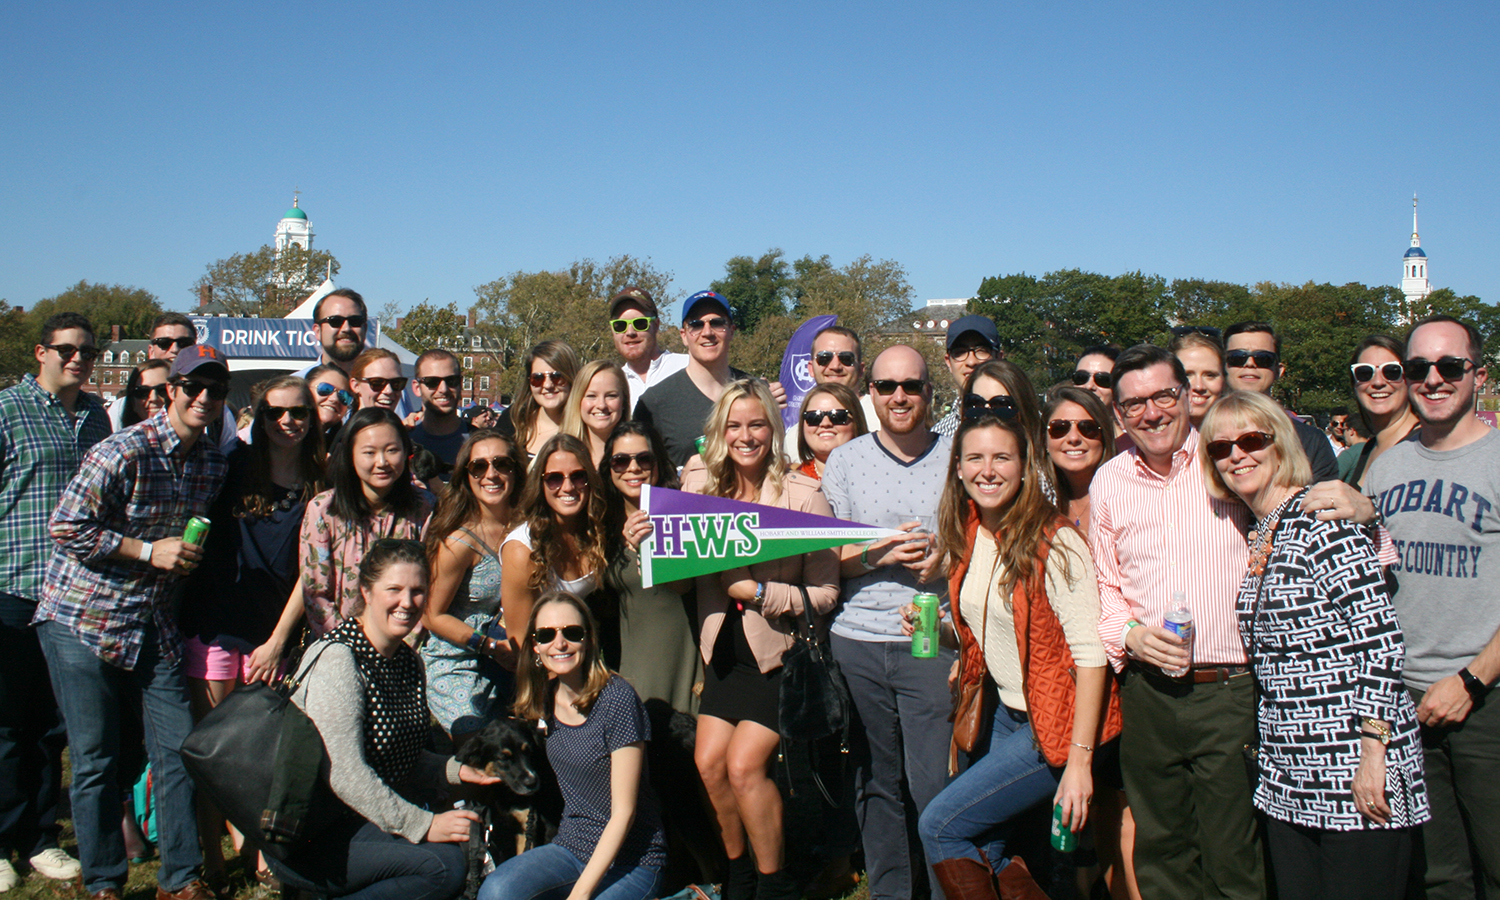 Alumni, students and friends of the Colleges gather at the Head of the Charles Regatta in Boston, Massachusetts.  The Hobart Statesmen and William Smith Herons rowing teams both competed.